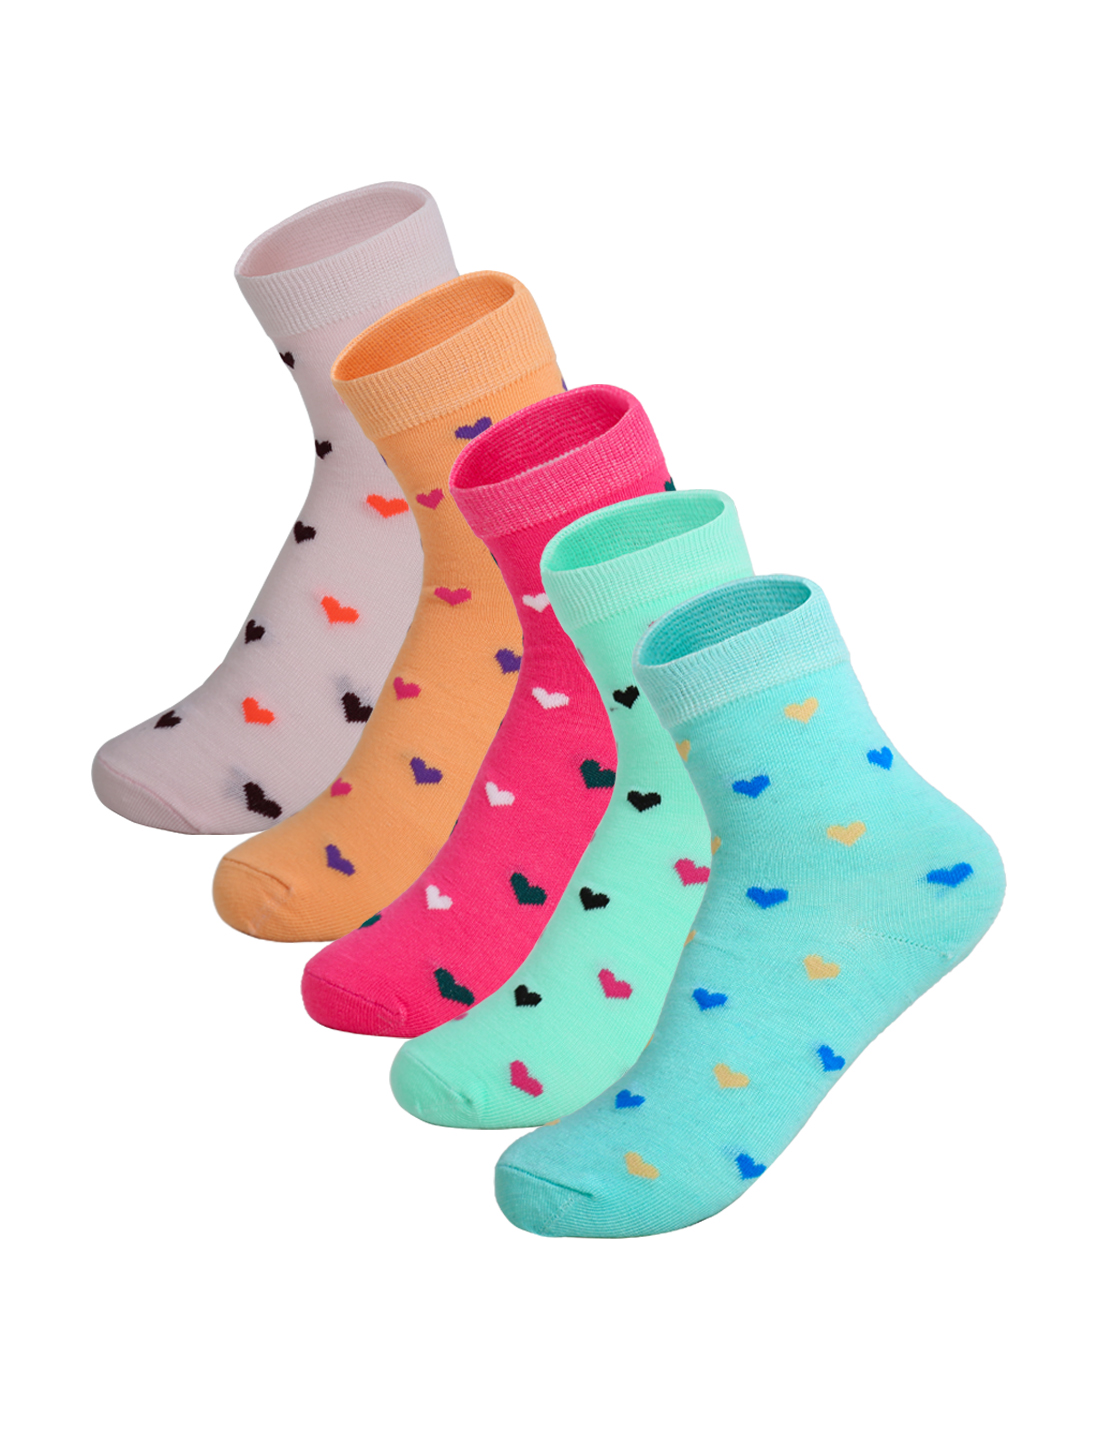 Women 5 Pack Ankle Length Elastic Cuff Hearts Socks Assorted 9-11